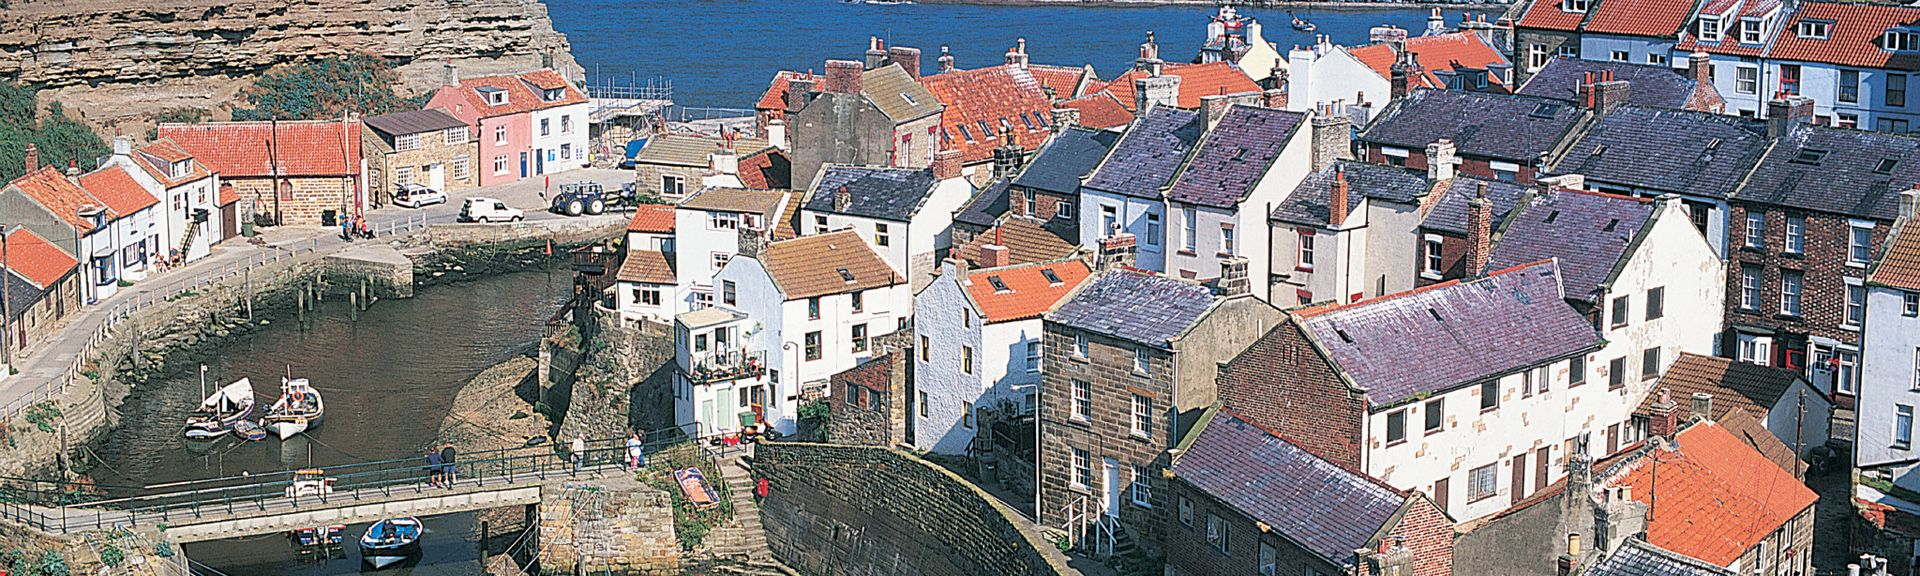 Staithes, North Yorkshire, UK